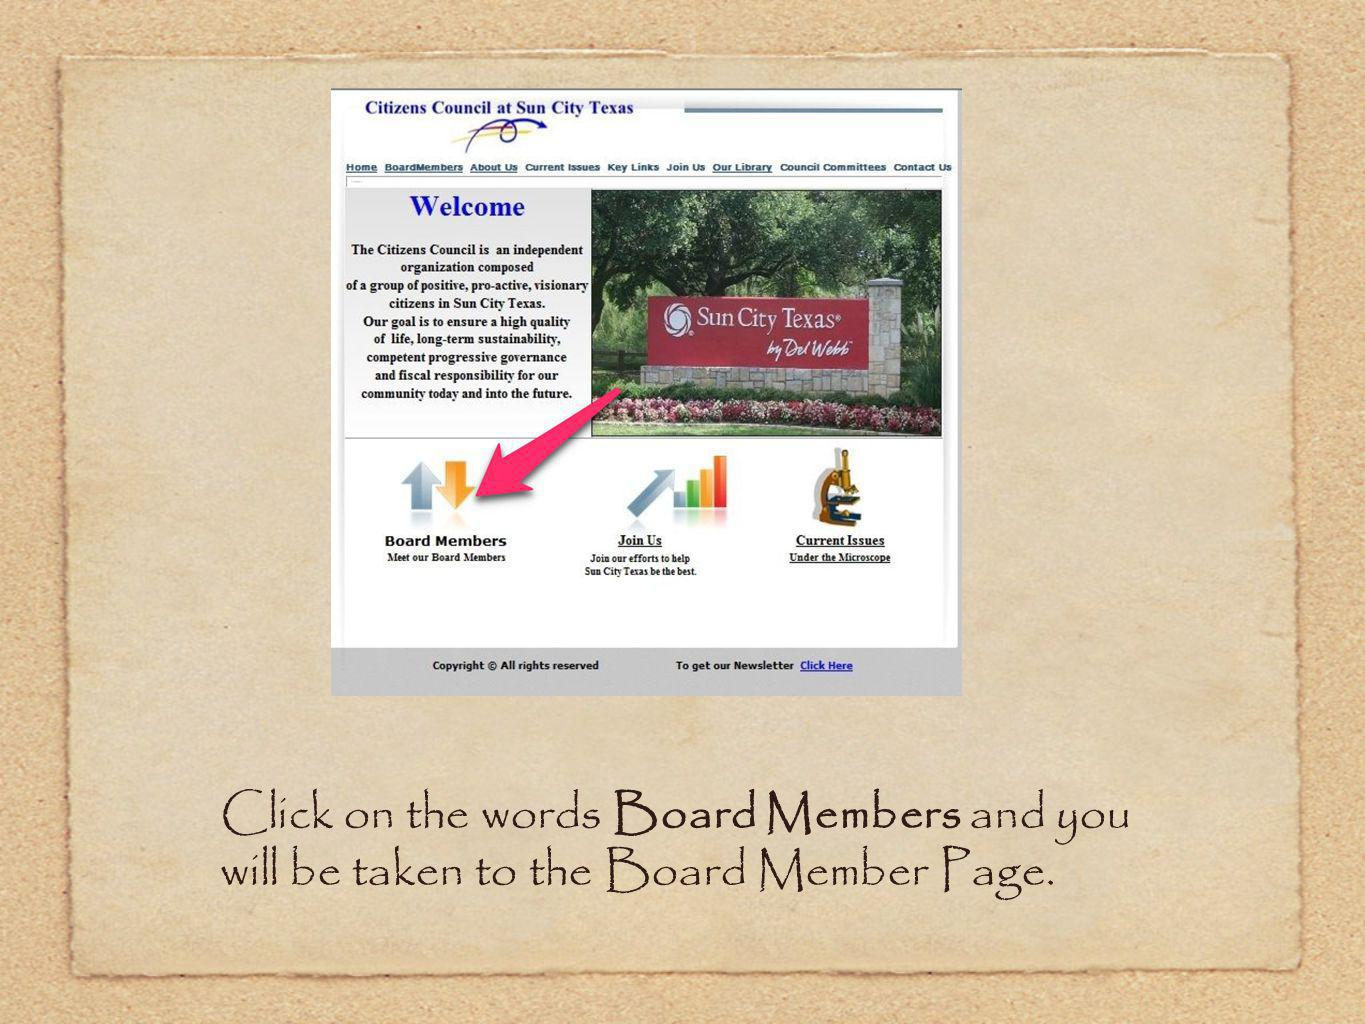 Click on the words Board Members and you will be taken to the Board Member Page.